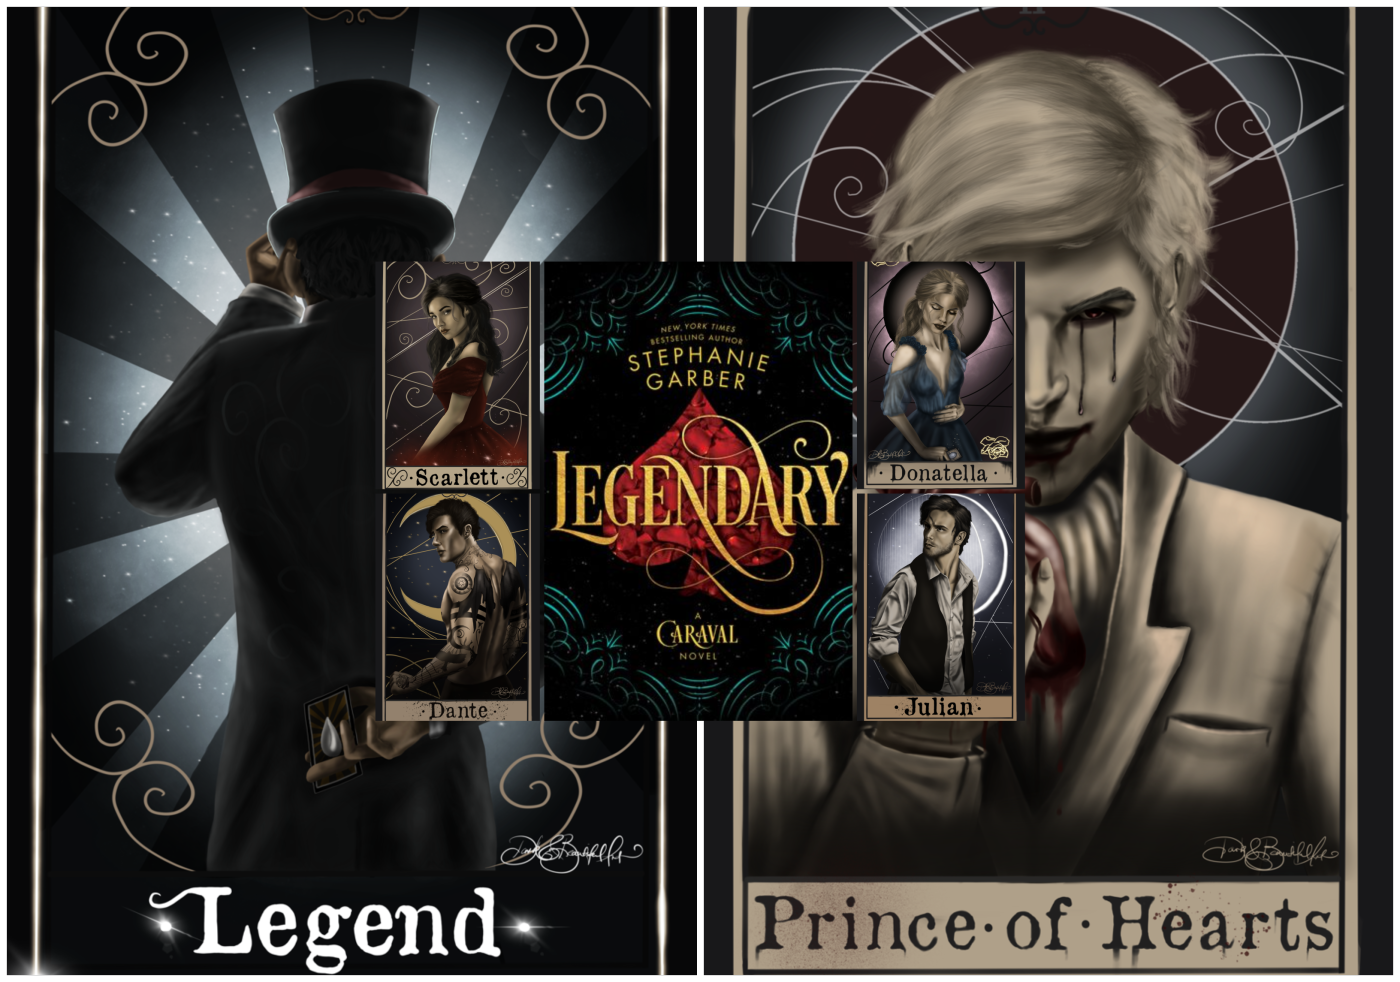 Legendary by Stephanie Garber – Tale of a Bookworm